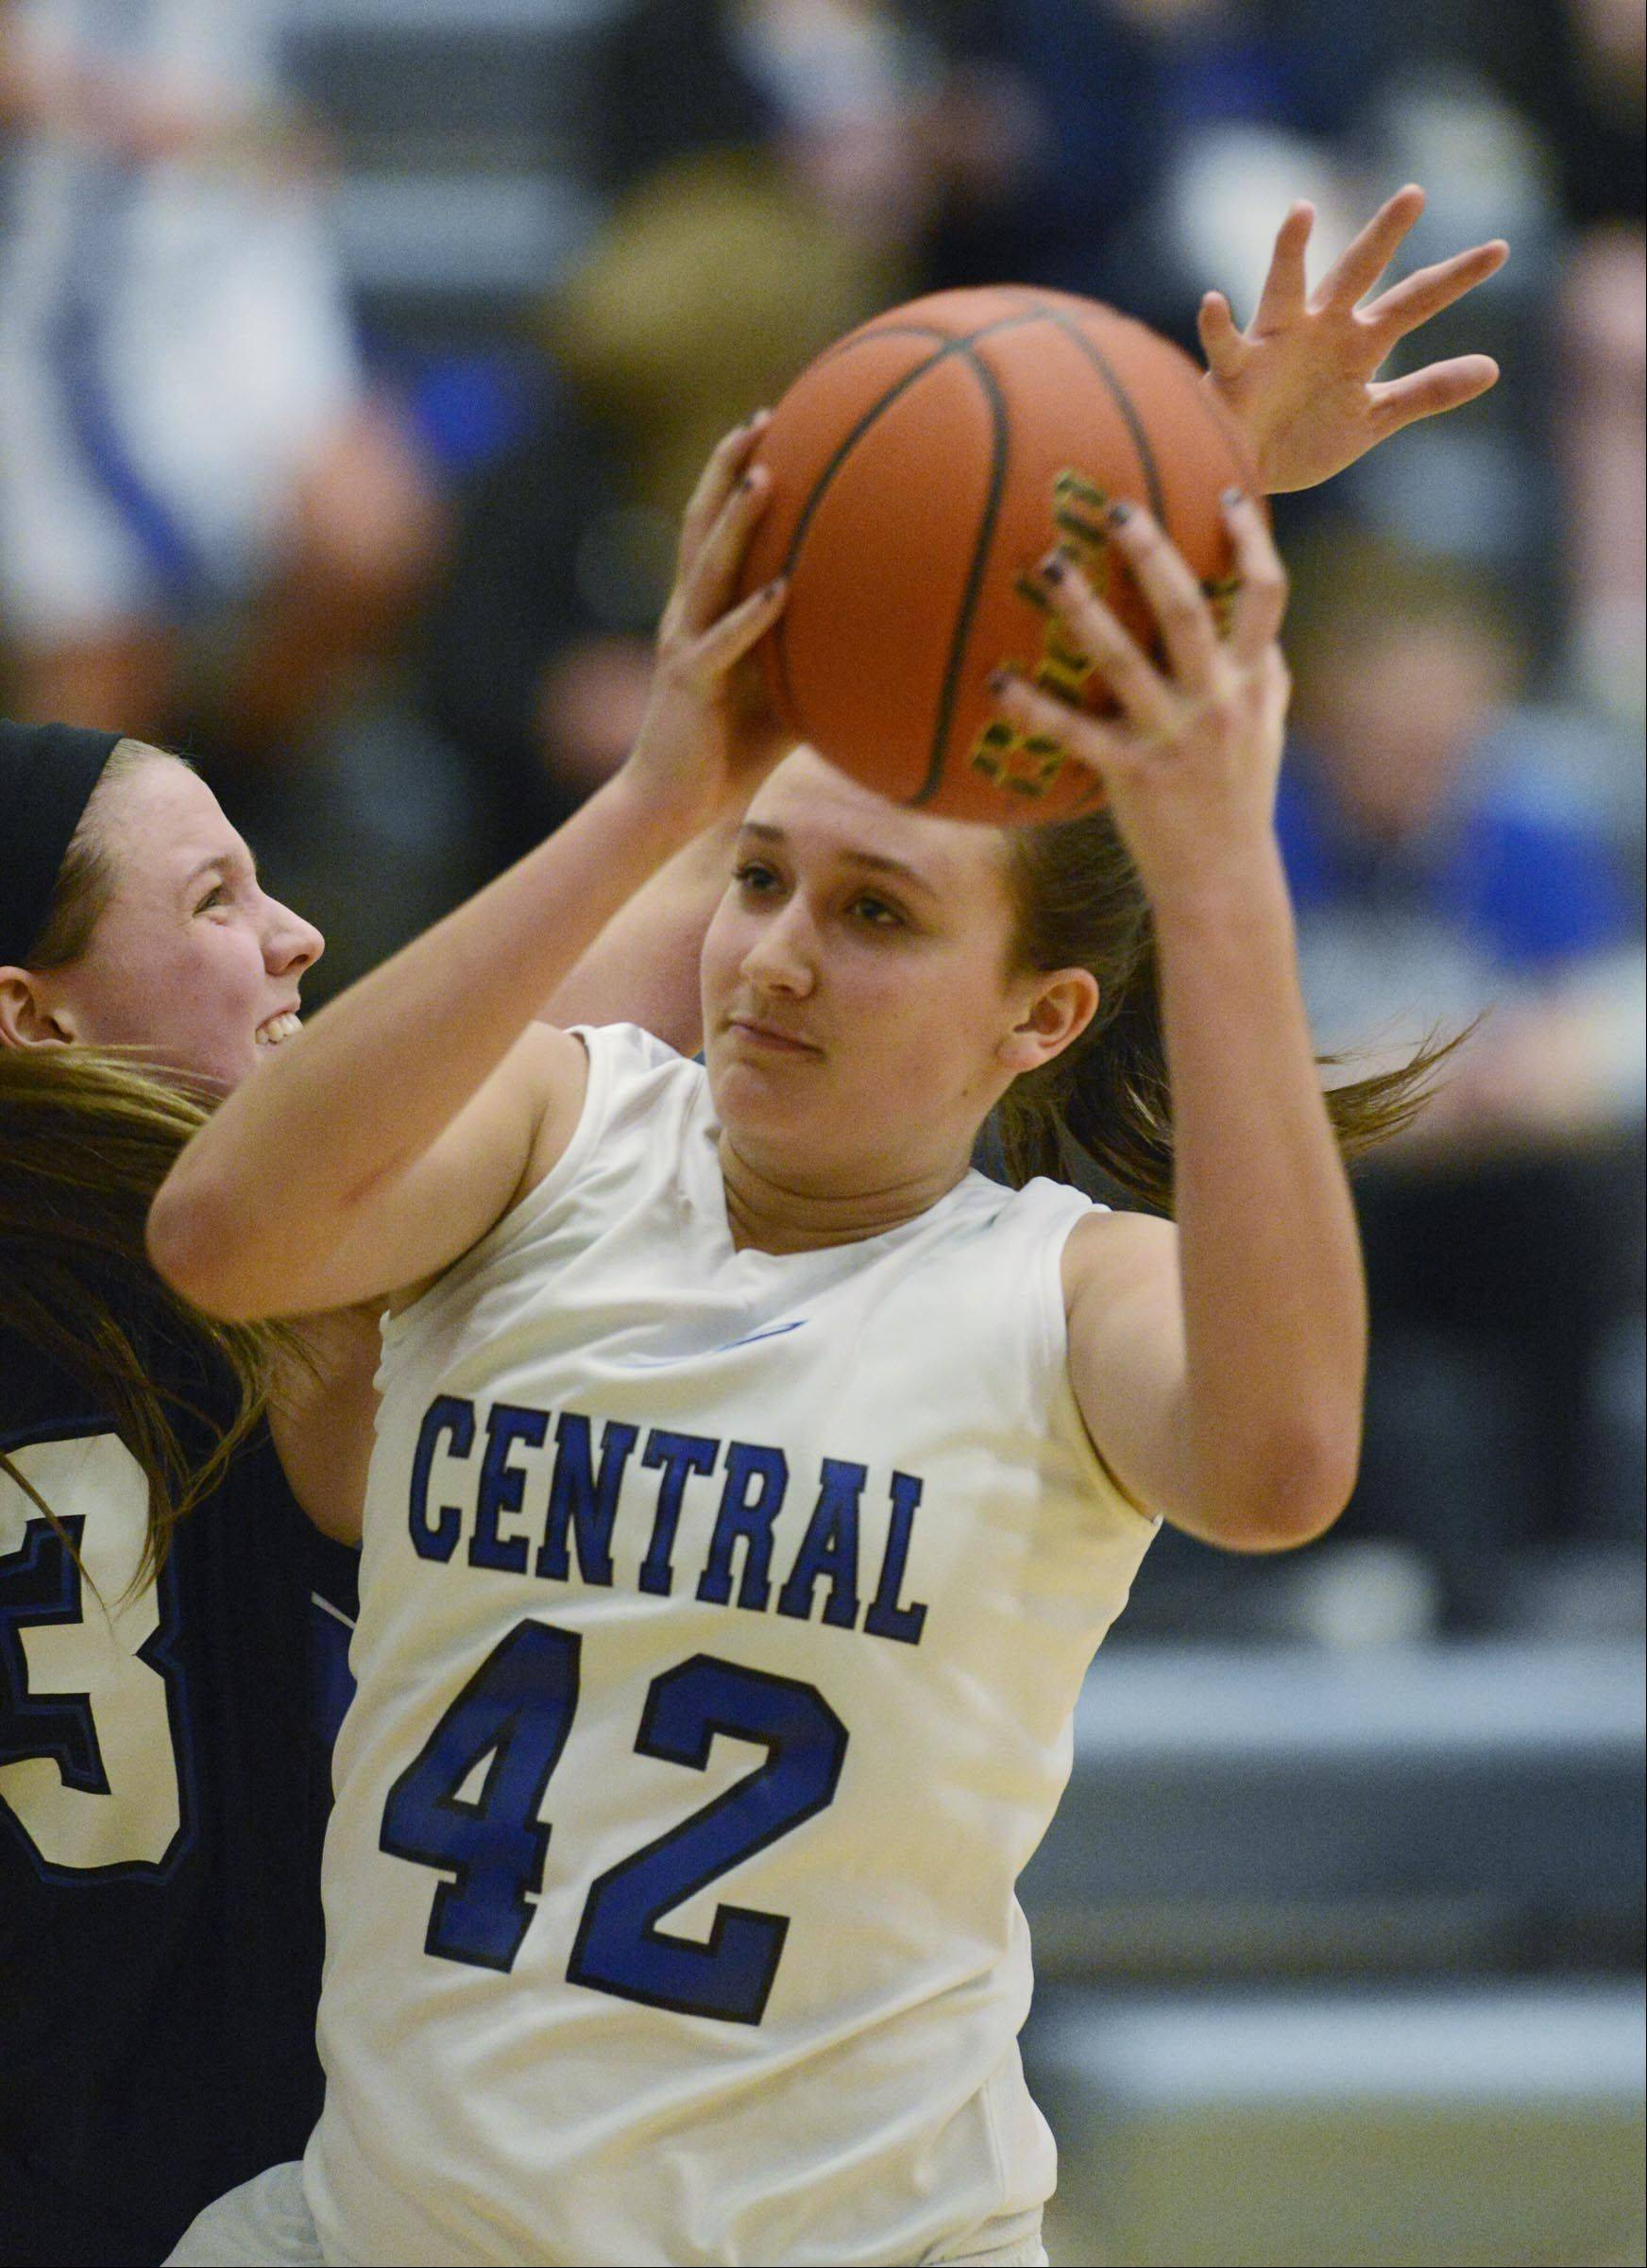 Burlington Central�s Alison Colby (42) gets past St. Charles North�s Nicole Davidson Tuesday in Burlington.